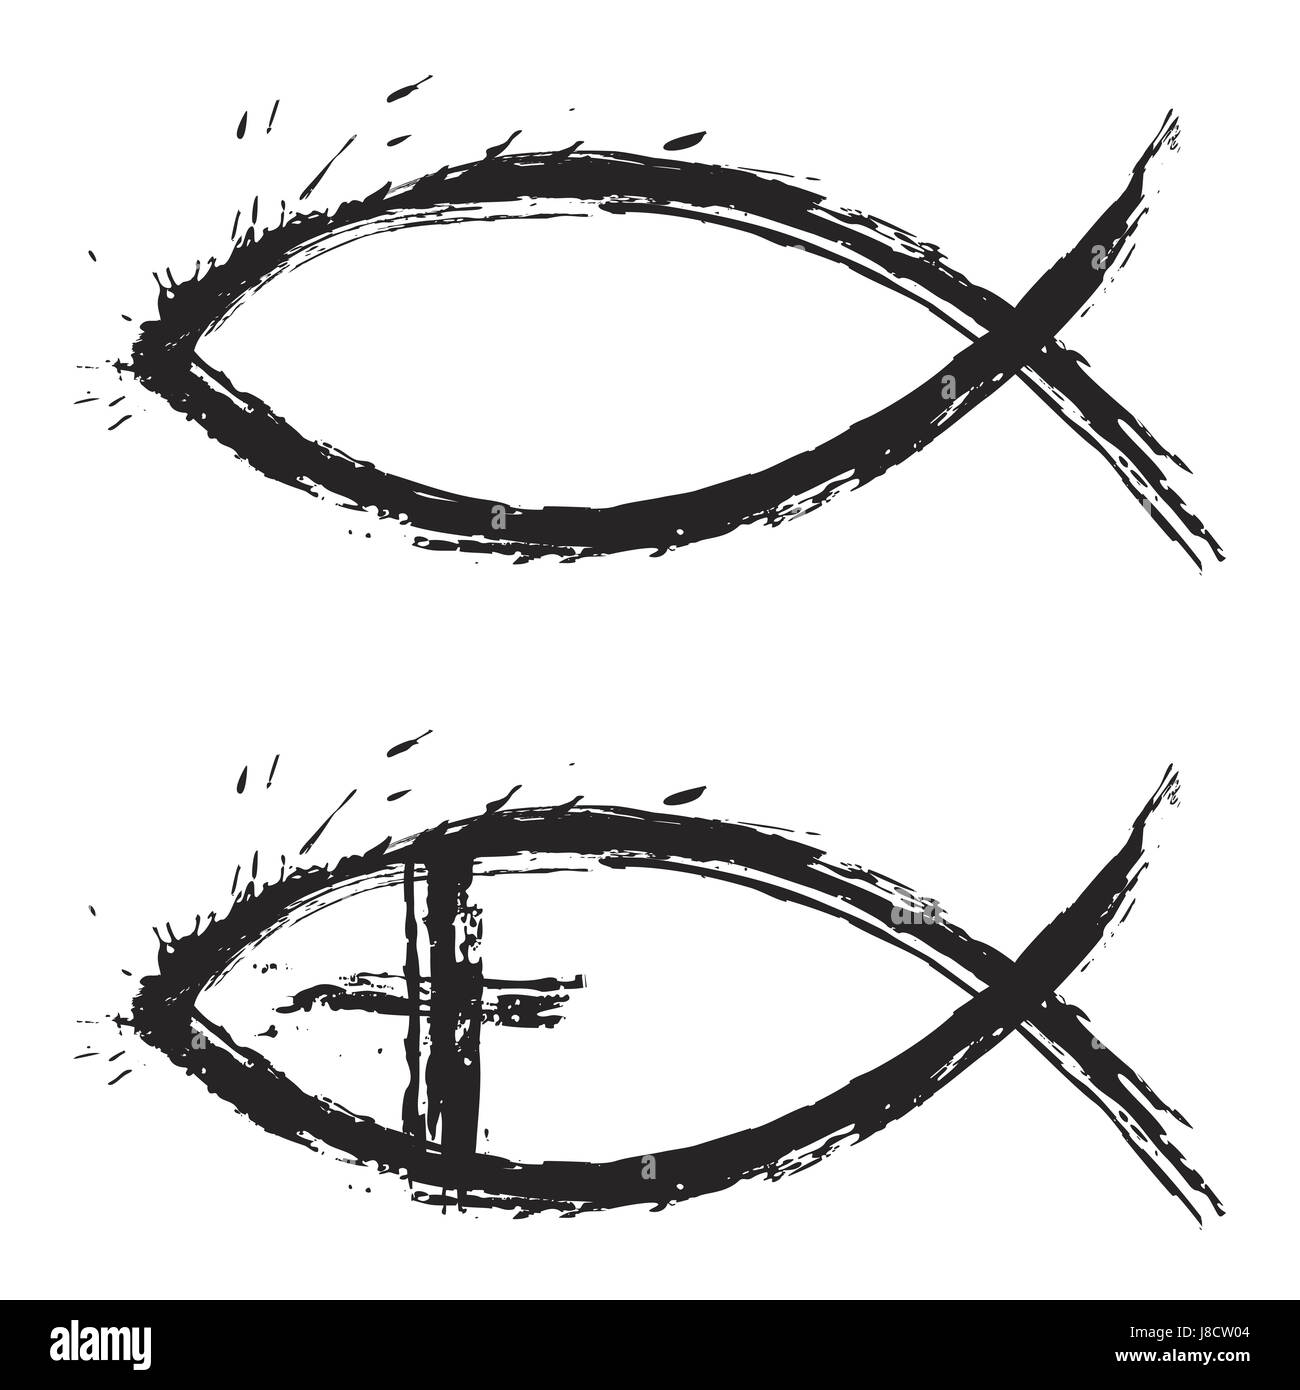 Ichthus Fish Symbol Stock Photos Ichthus Fish Symbol Stock Images